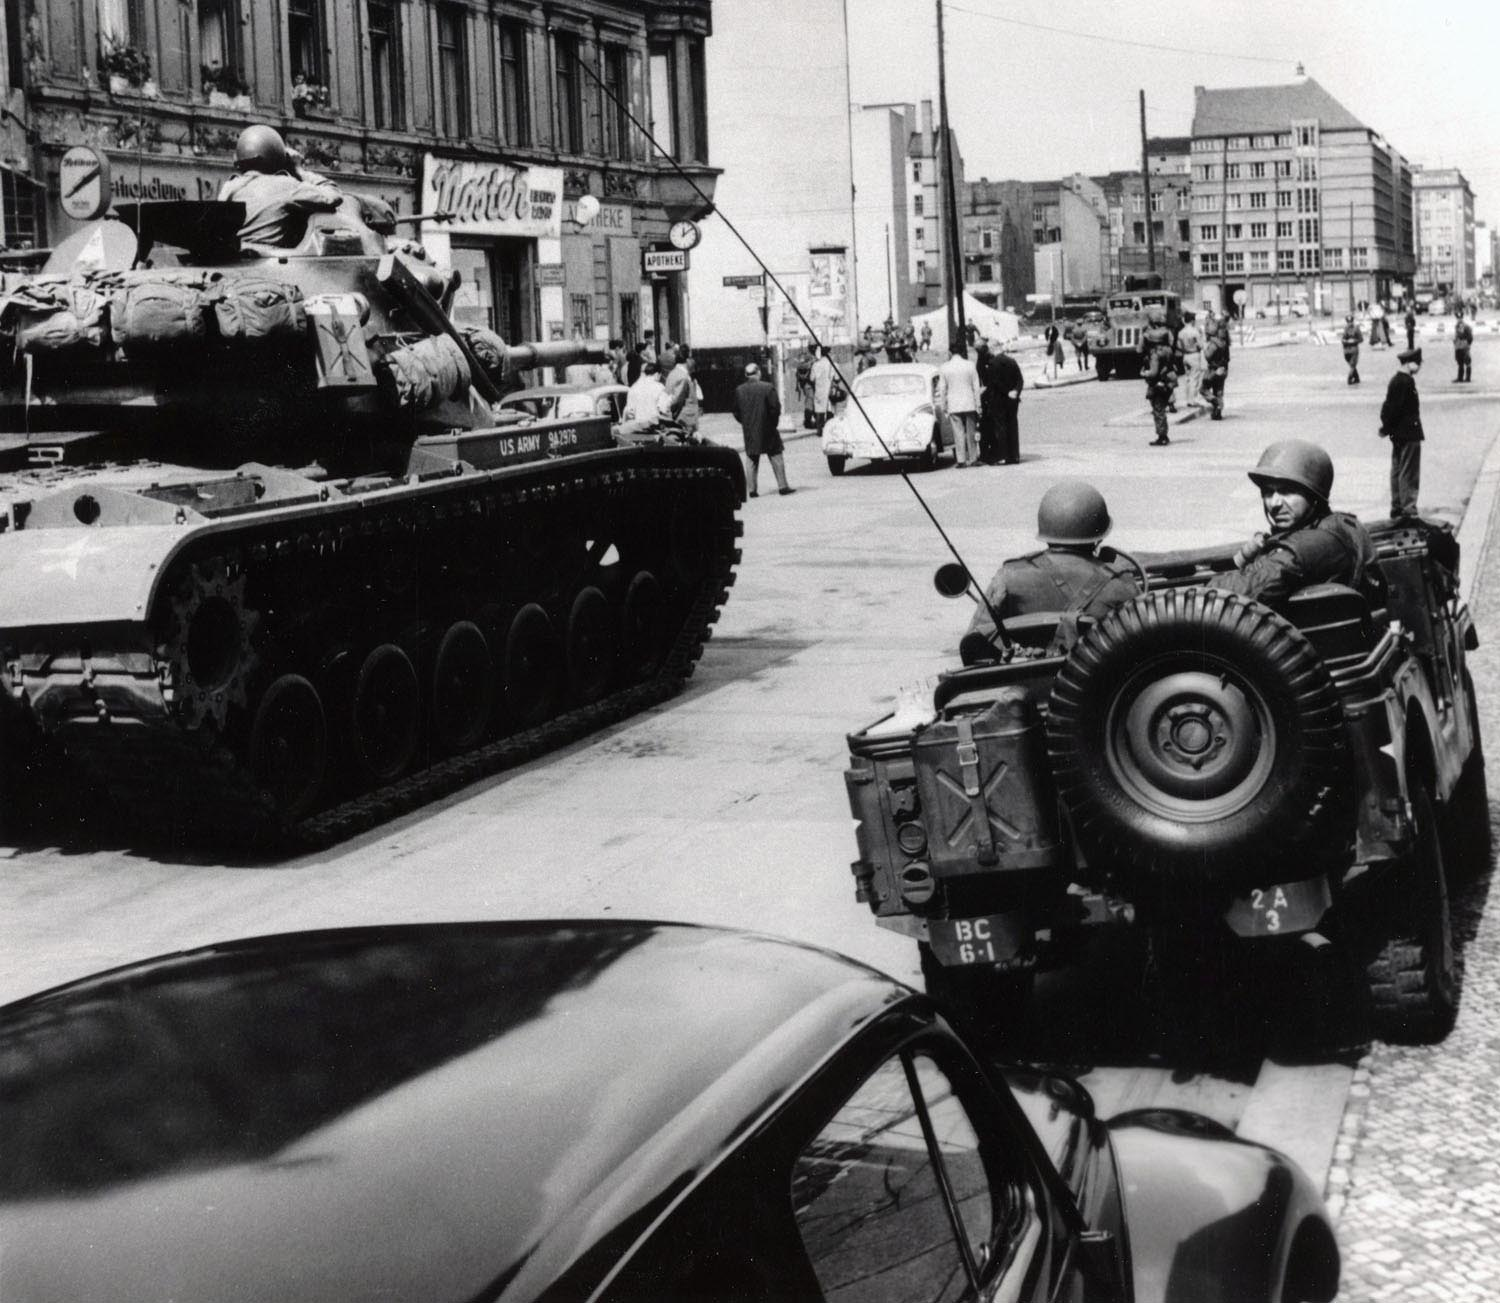 American tanks face an East German water cannon at Checkpoint Charlie.